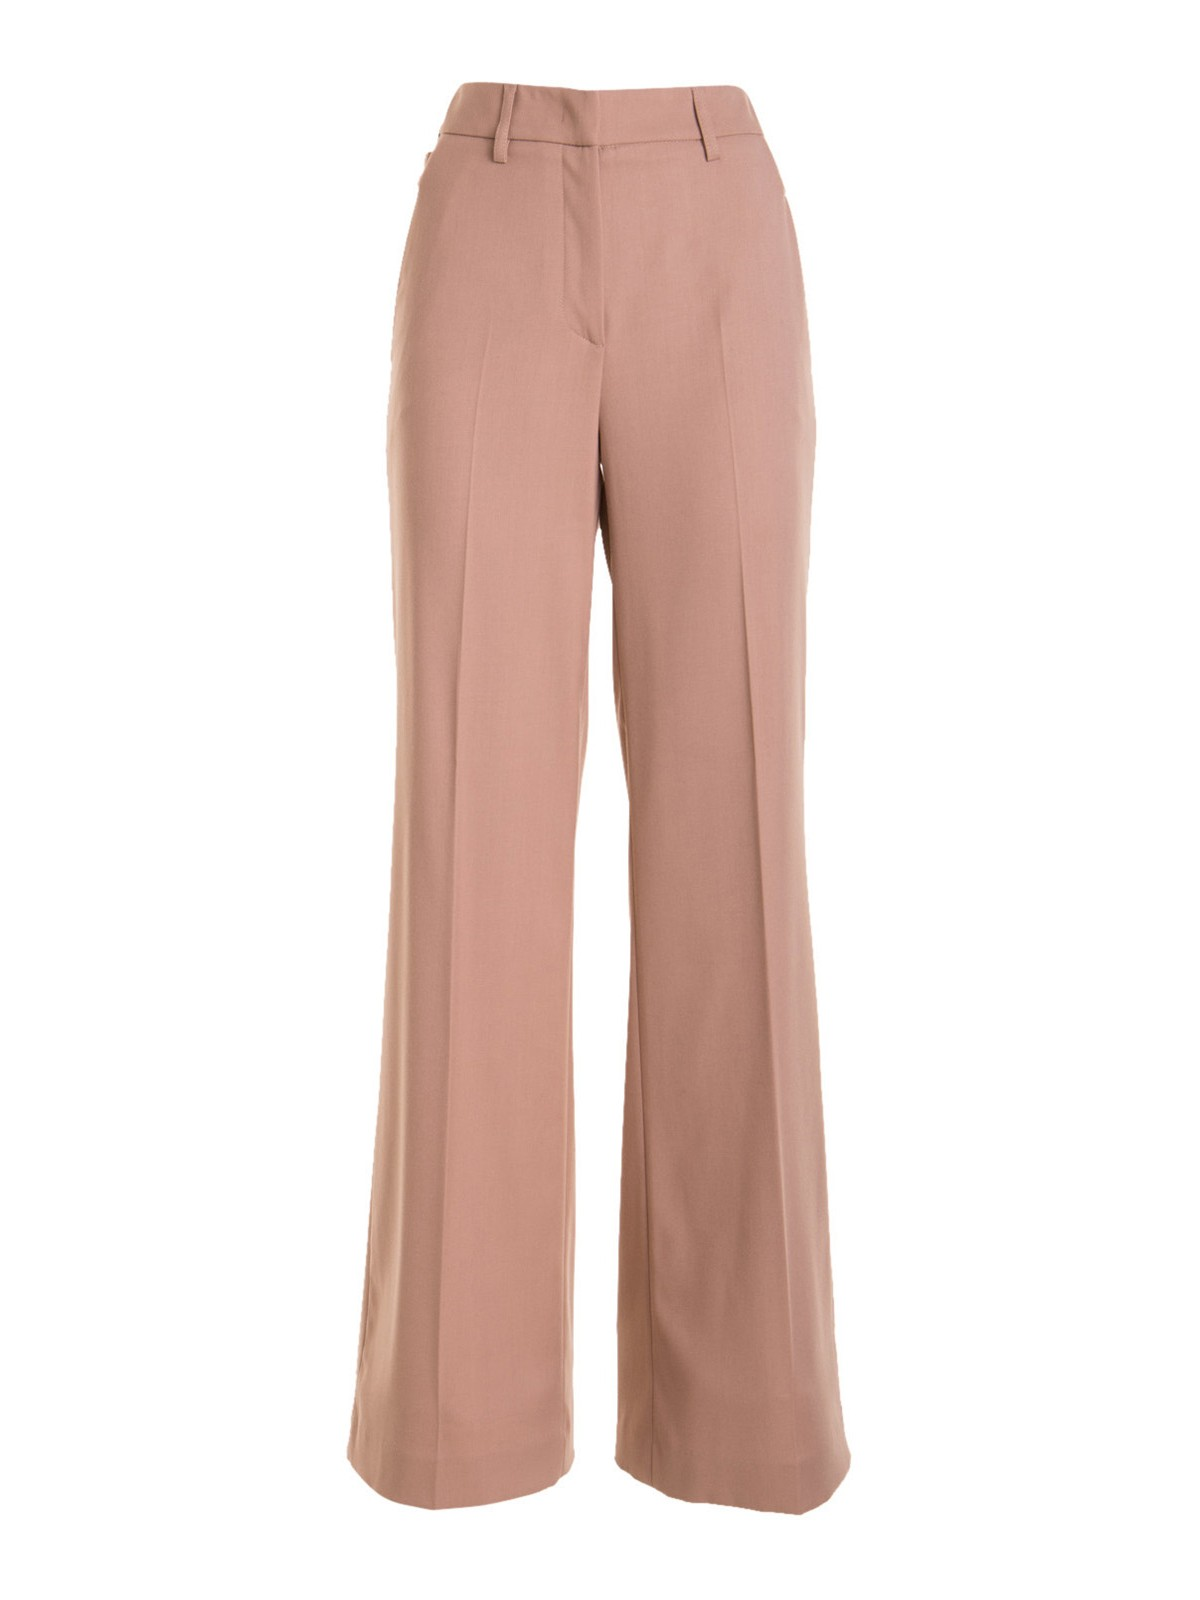 Blumarine GOLDEN BUTTON TROUSERS